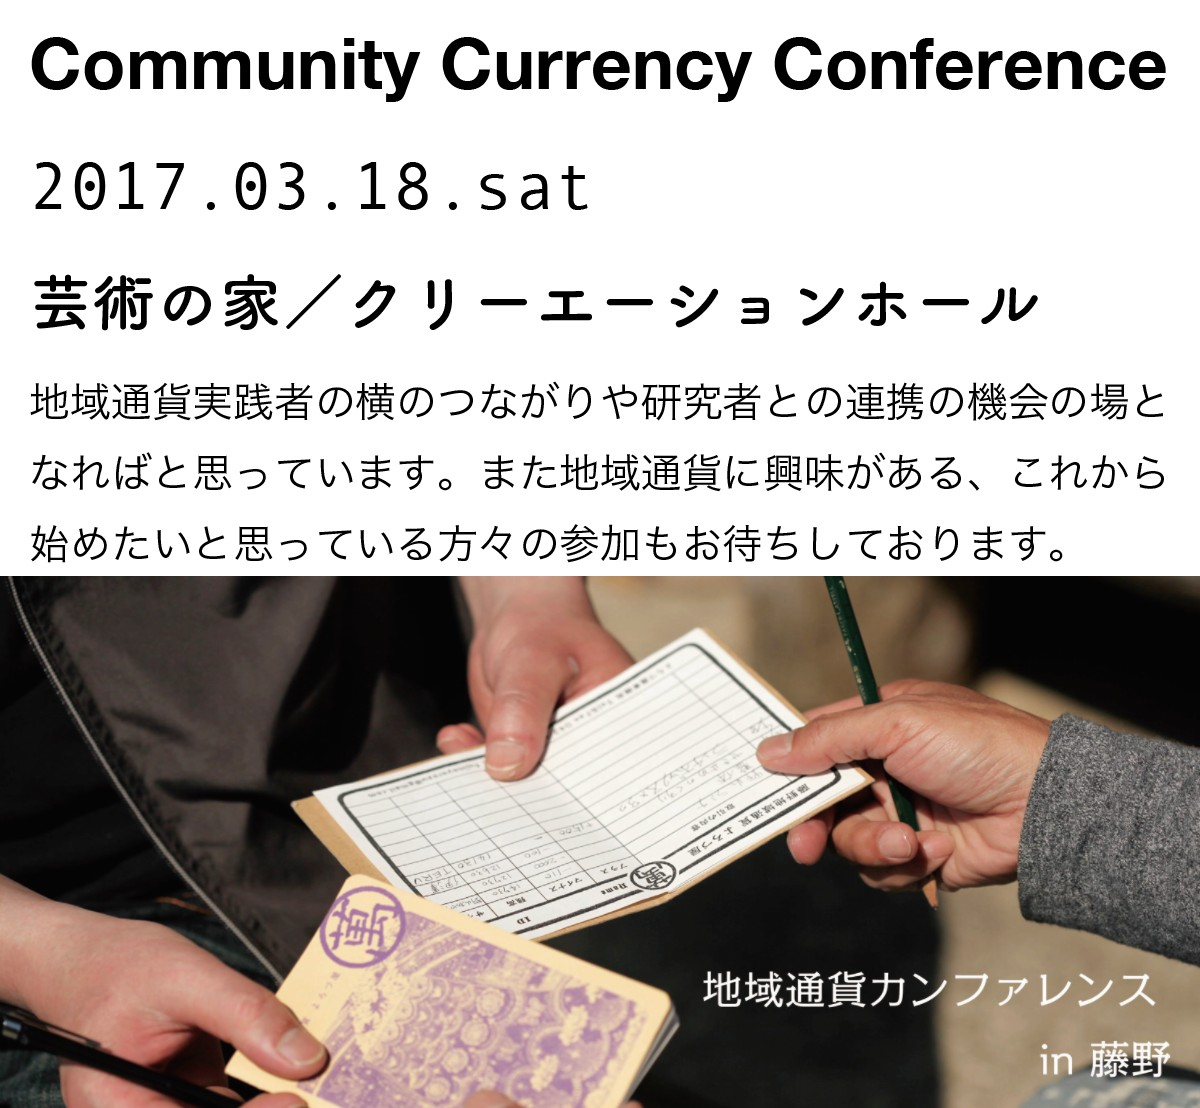 Community Currency Conference